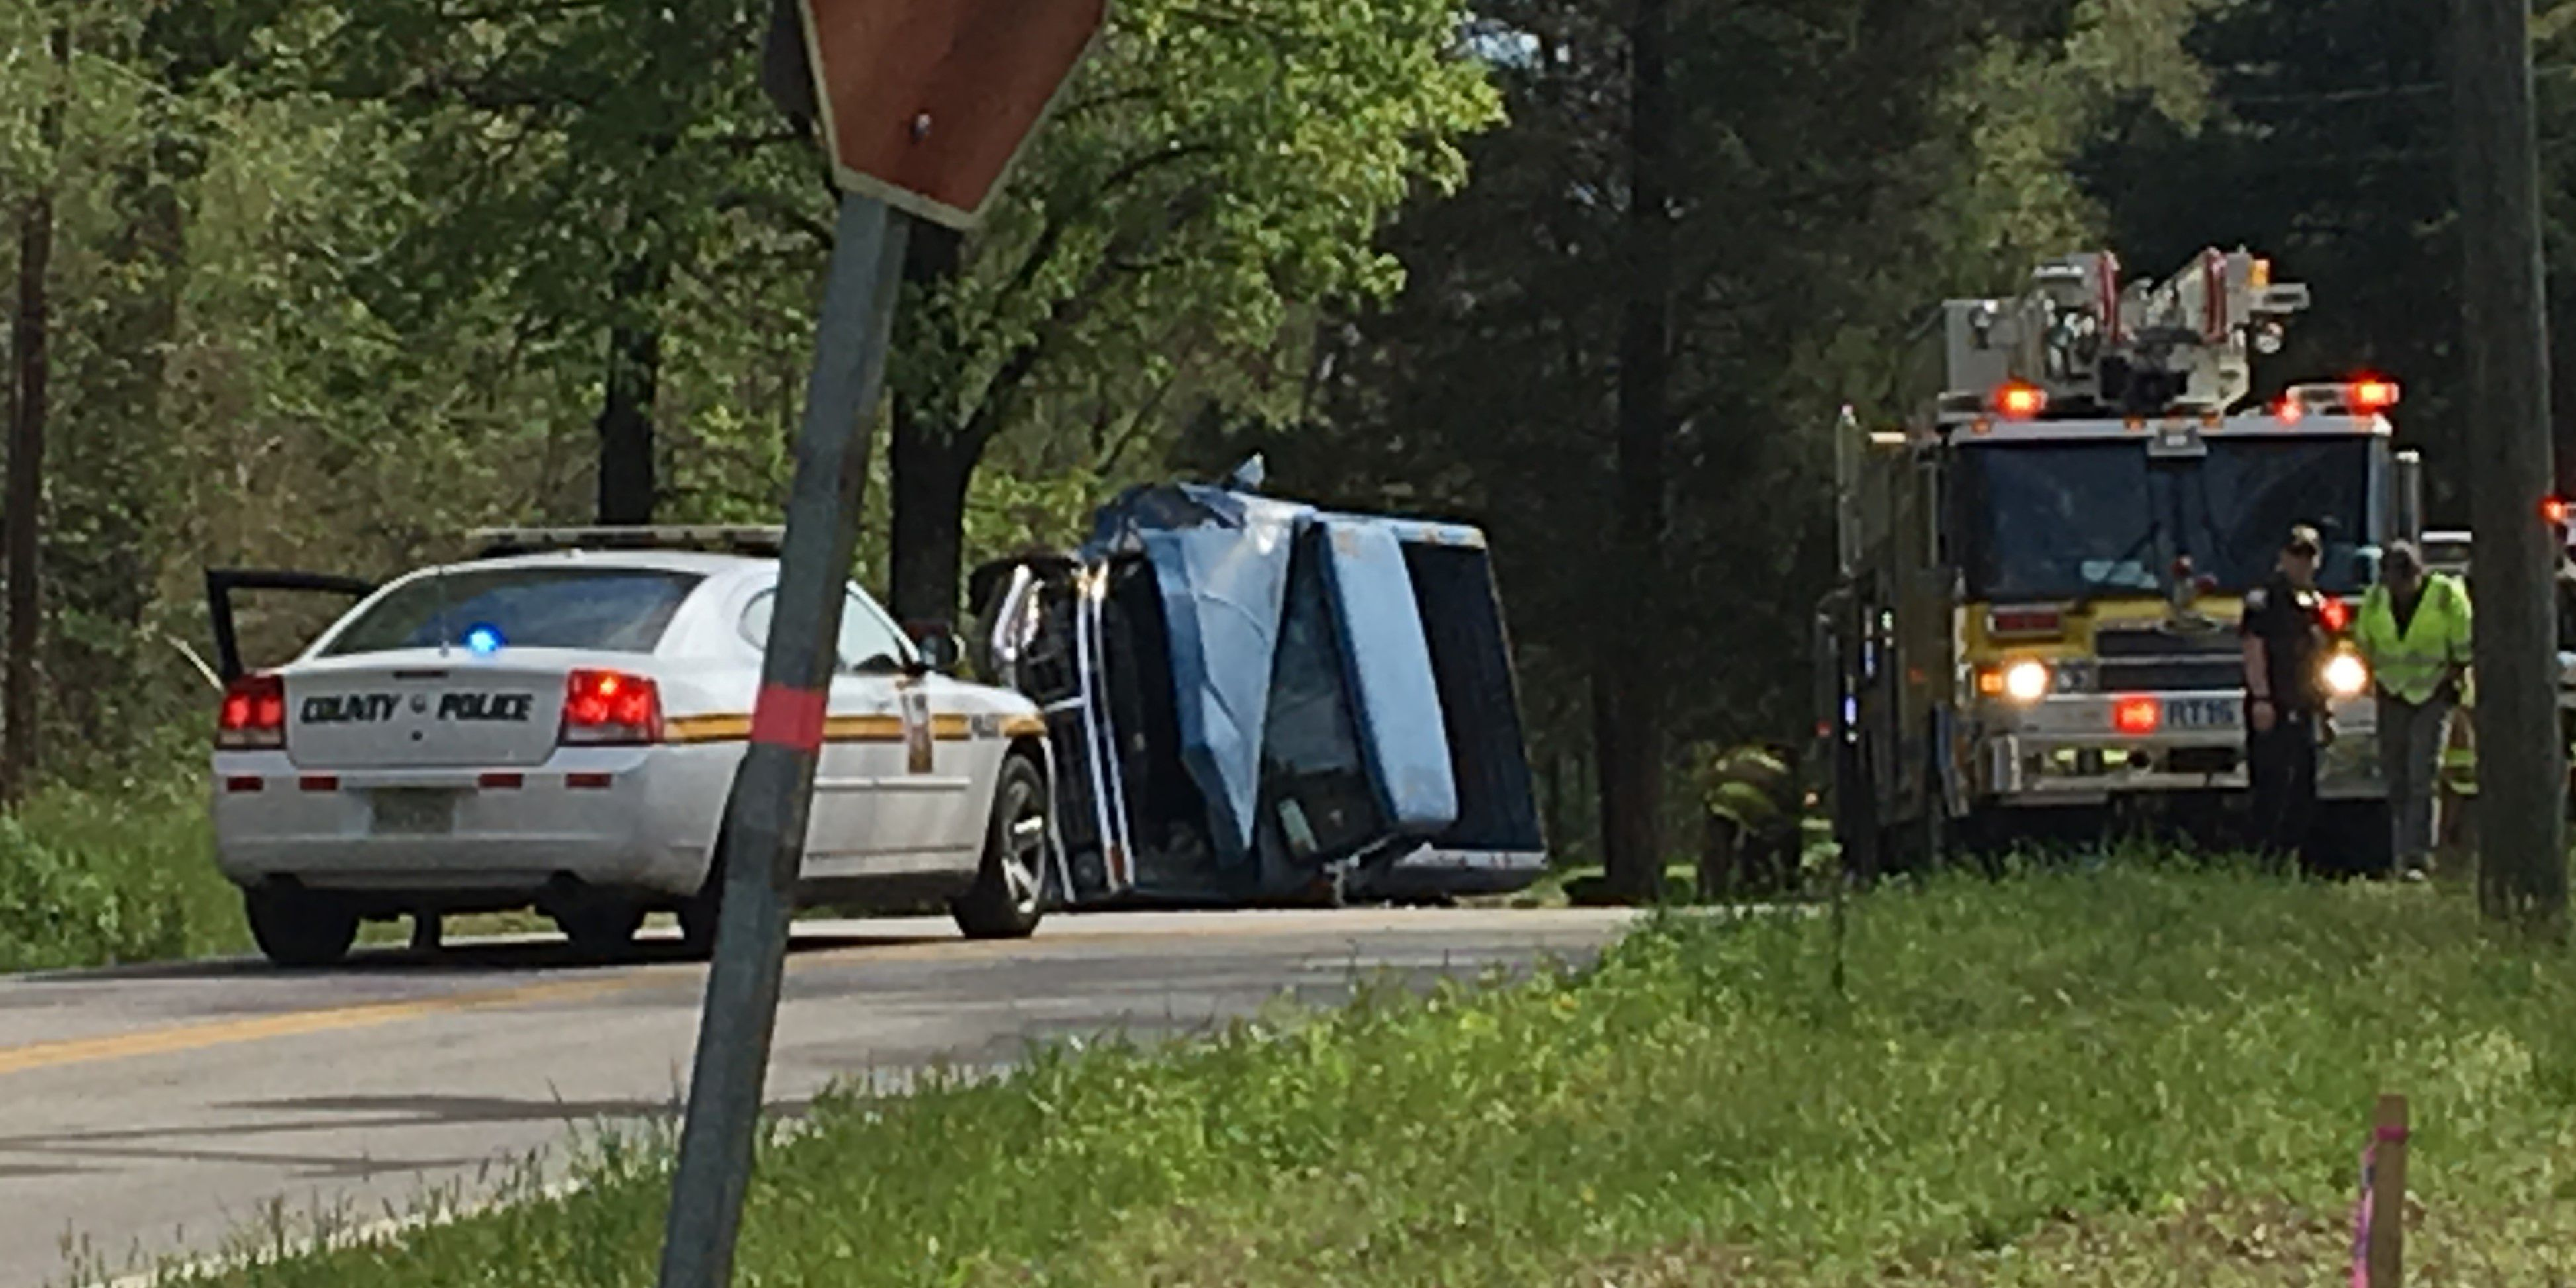 Truck strikes tree, overturns in Chesterfield